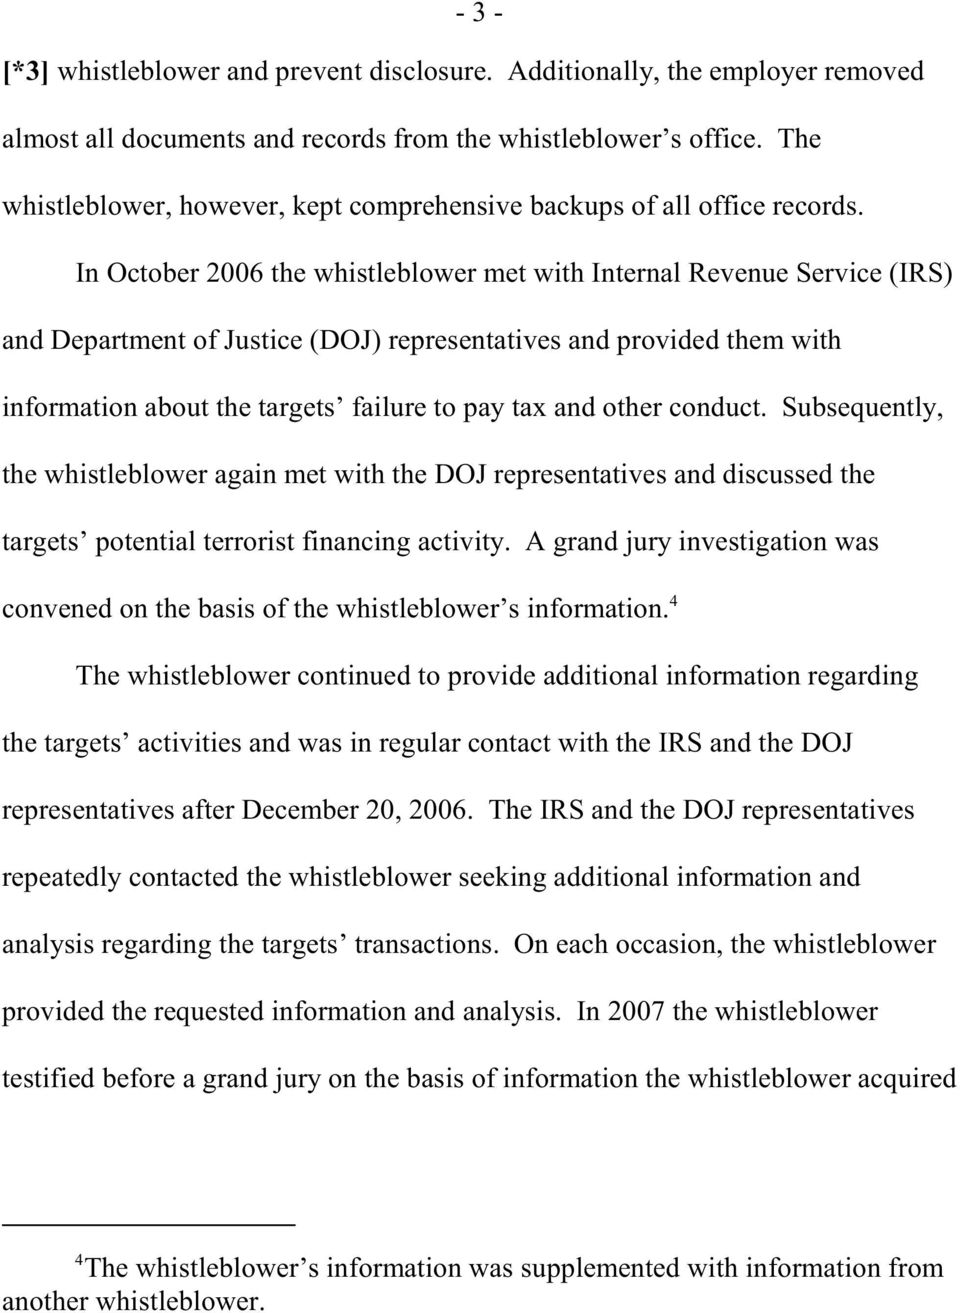 In October 2006 the whistleblower met with Internal Revenue Service (IRS) and Department of Justice (DOJ) representatives and provided them with information about the targets failure to pay tax and